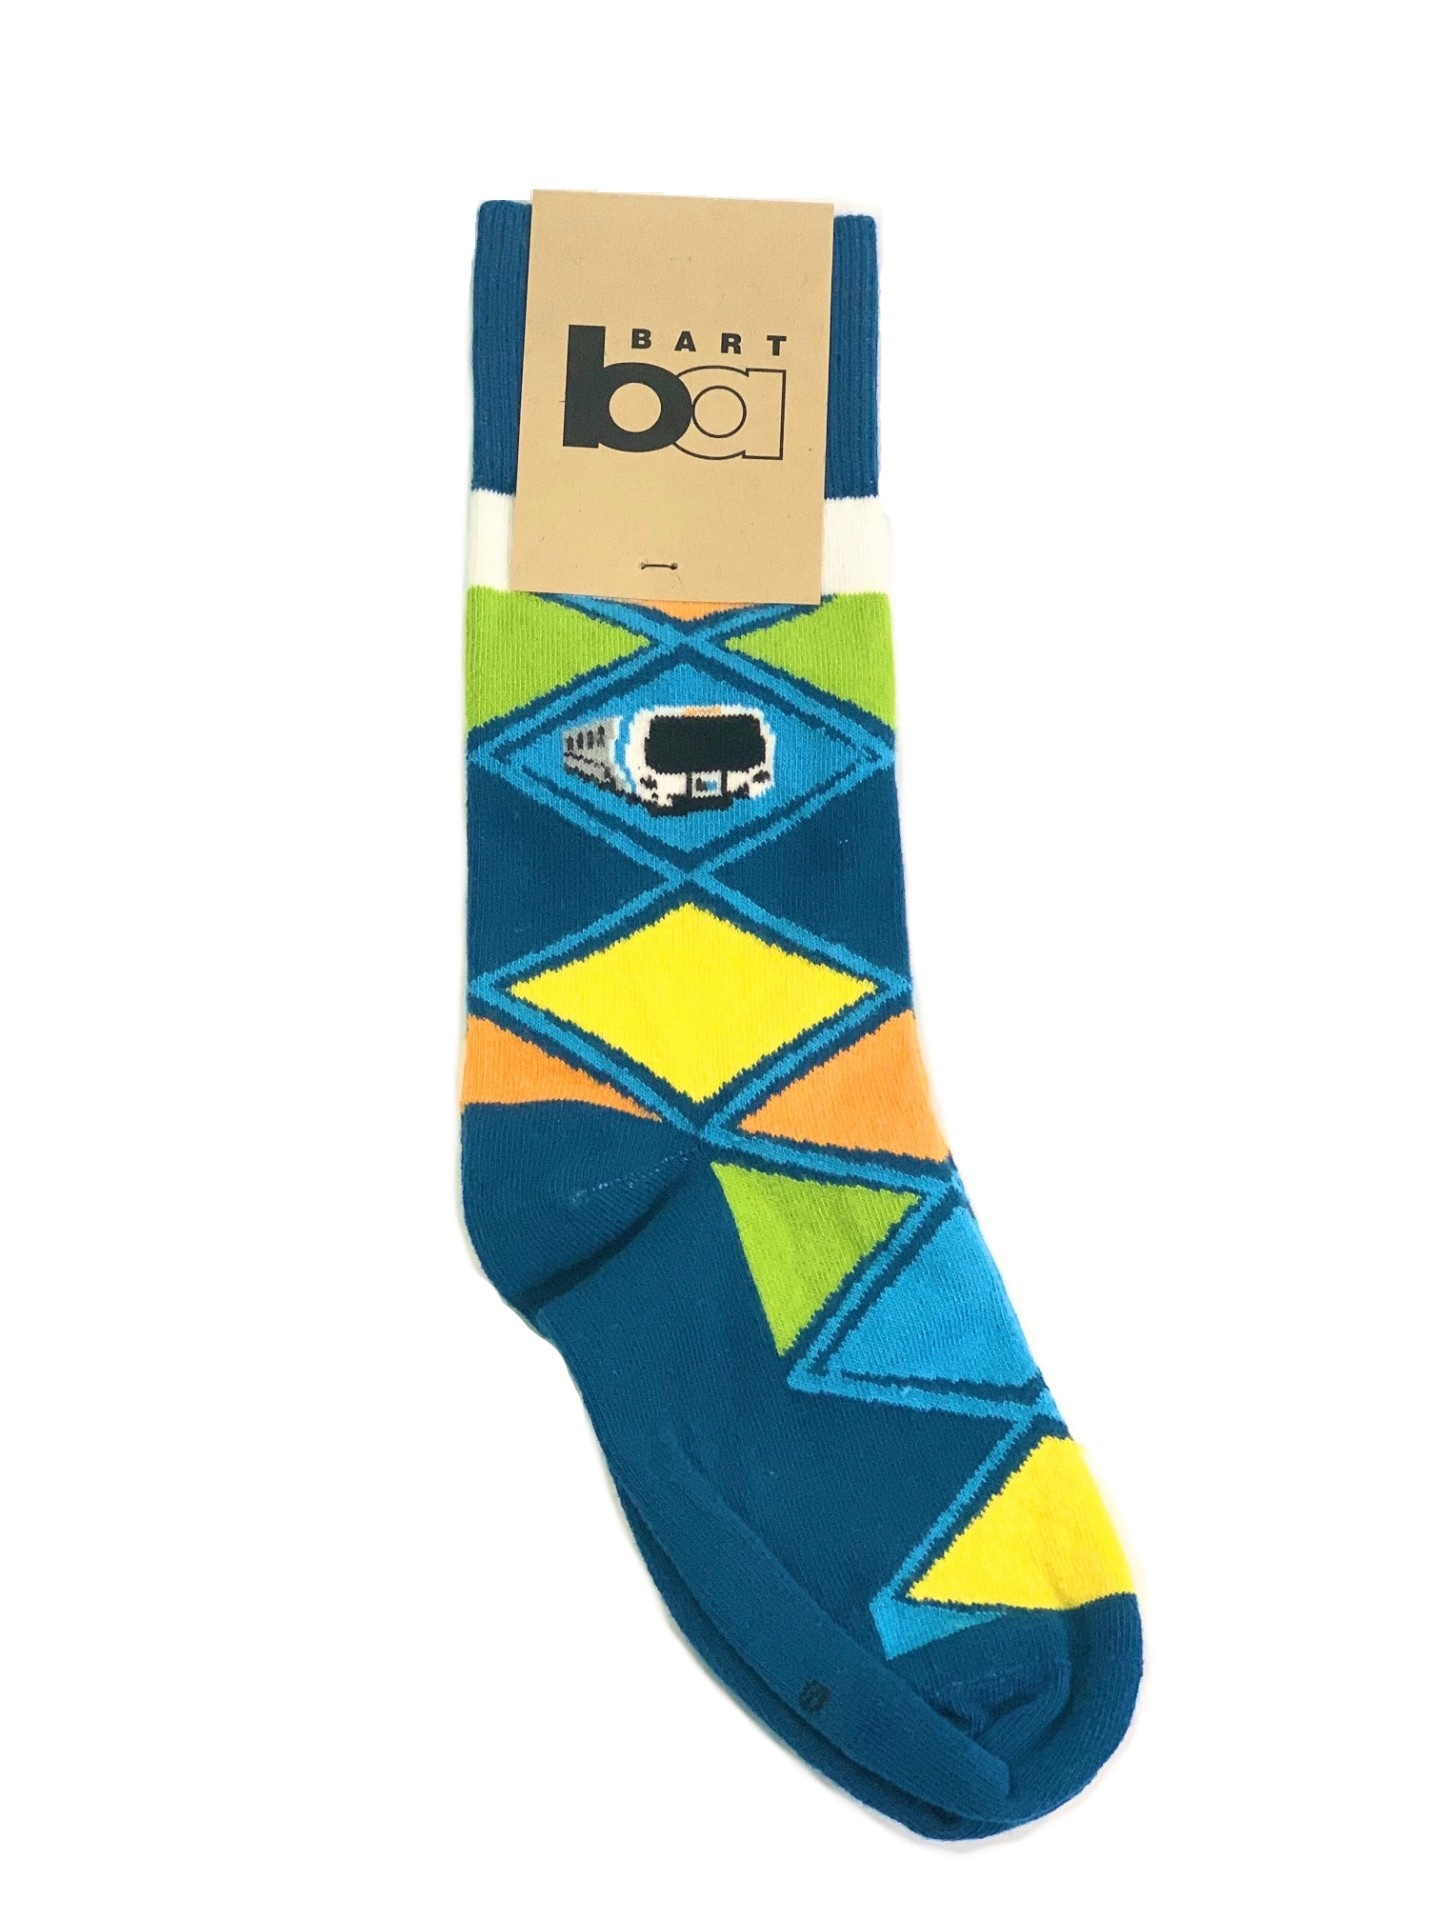 Sock Club BART Argyle Socks